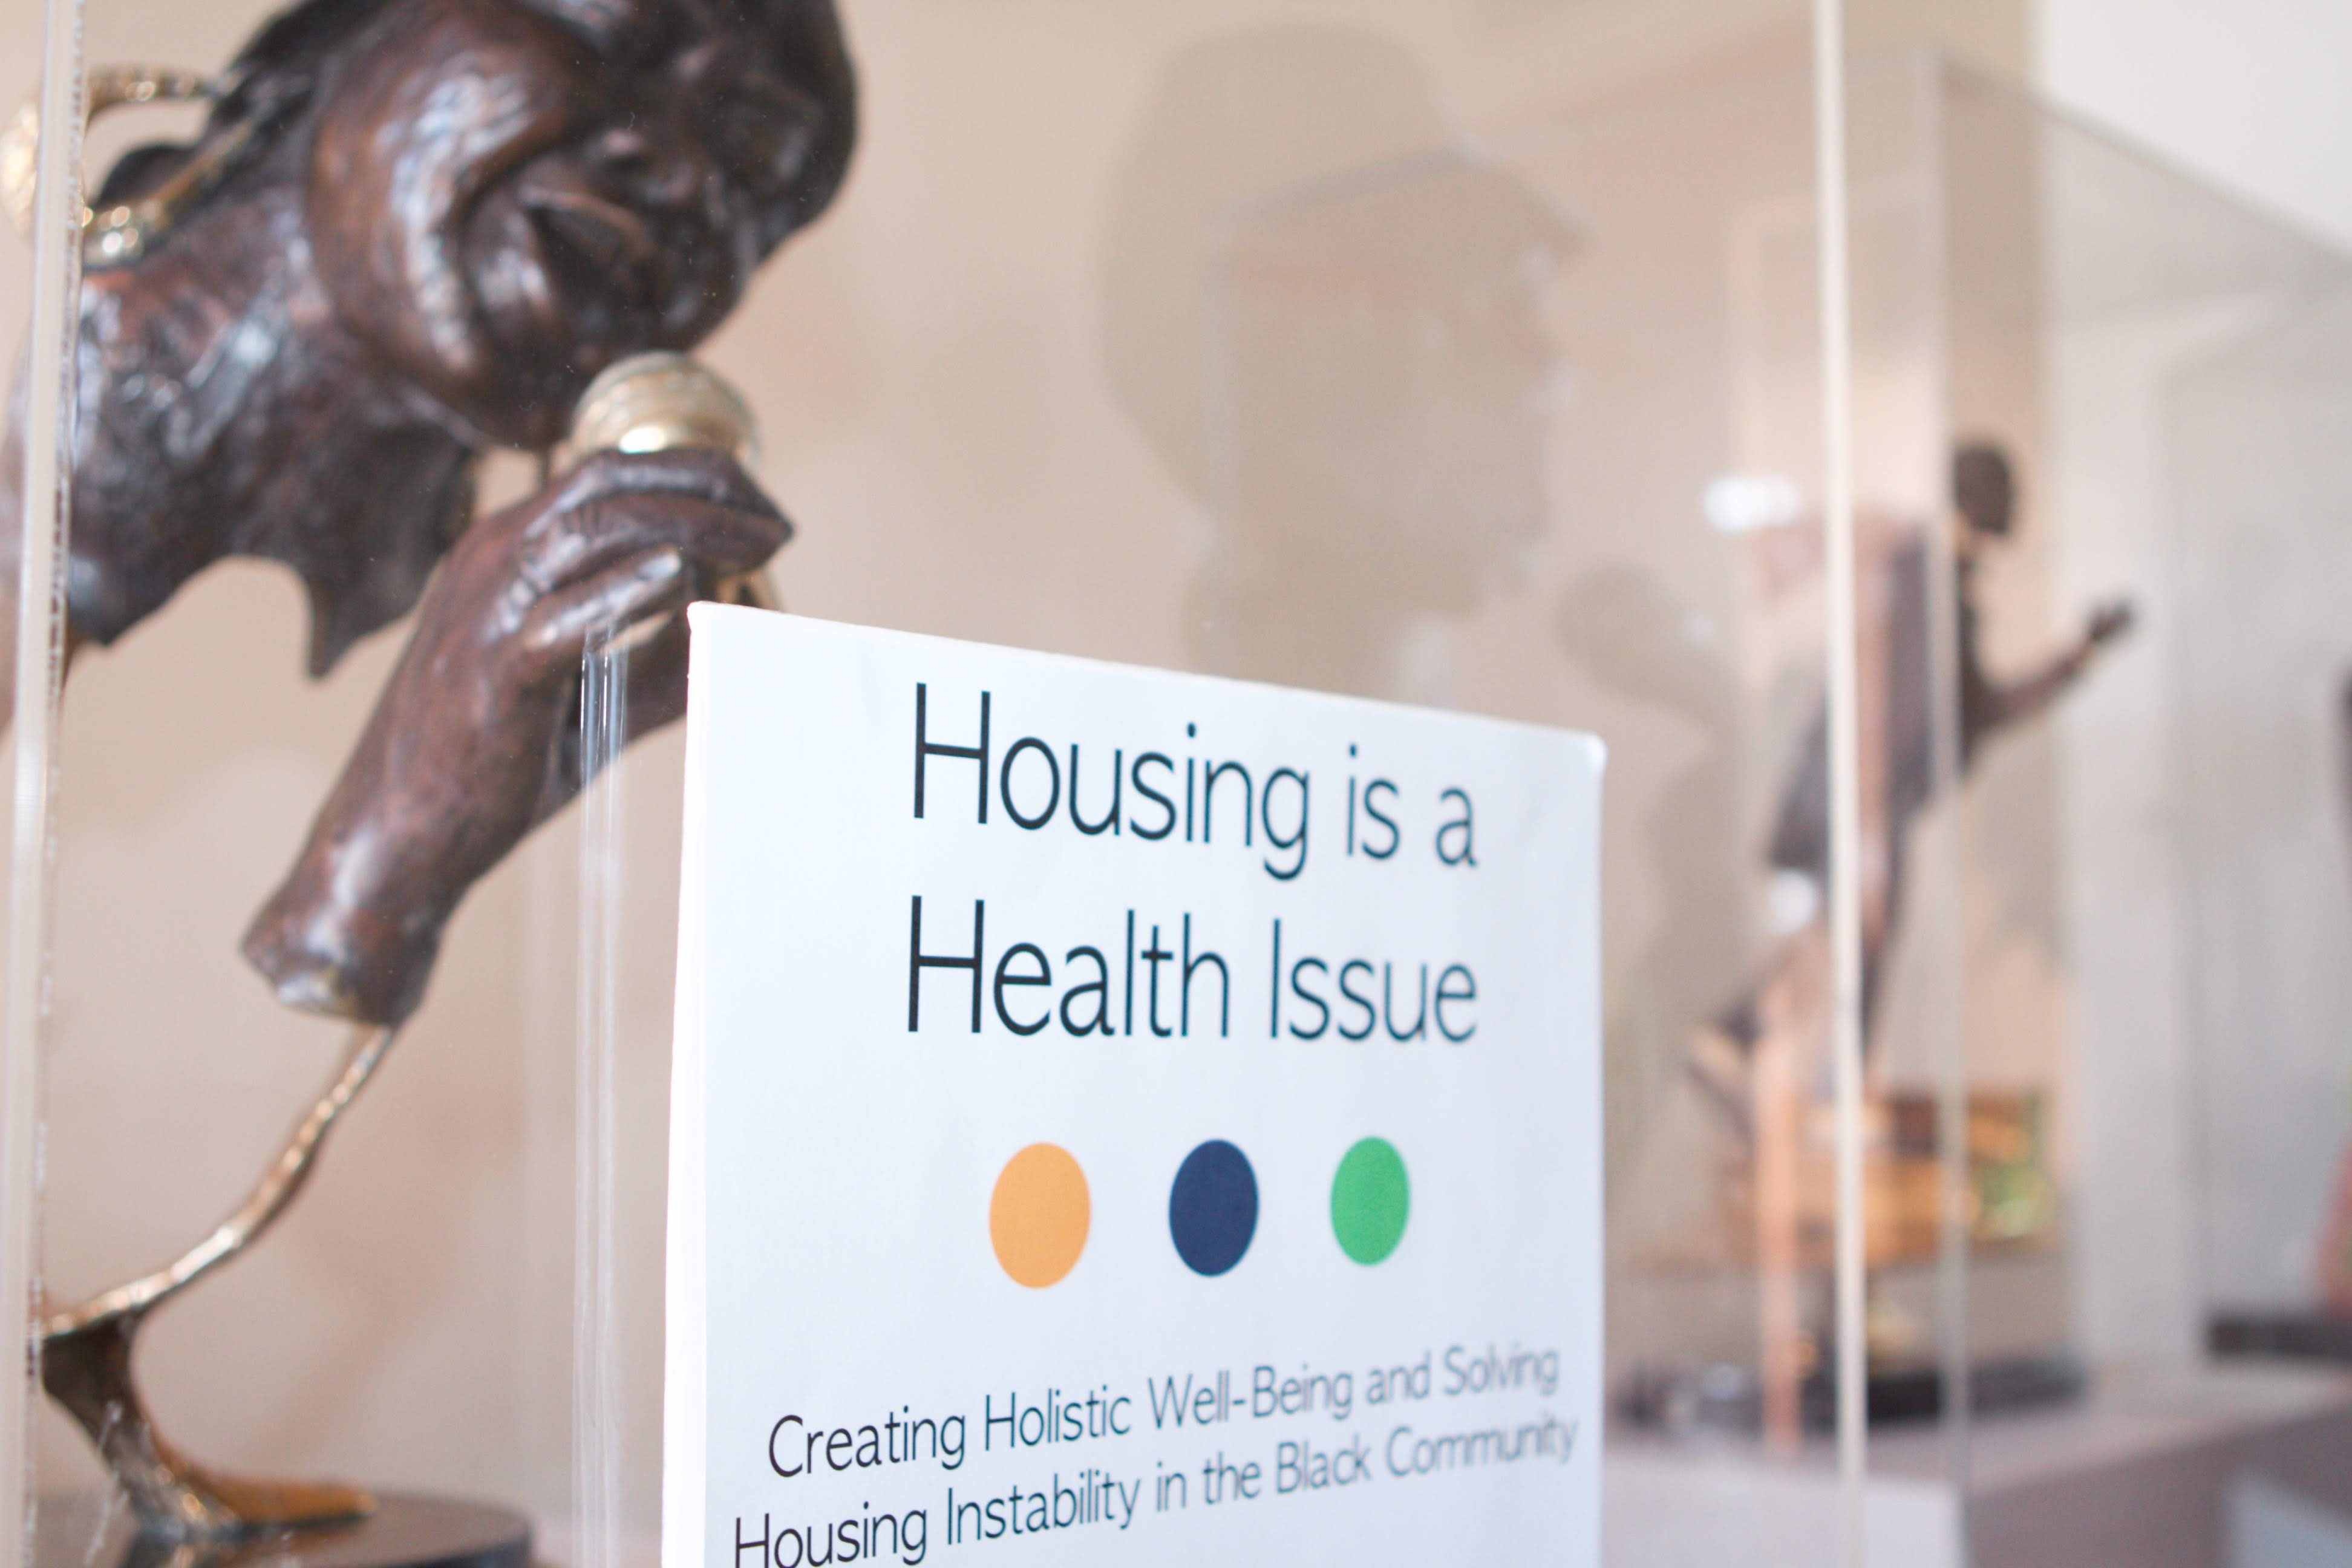 Housing is a Health Issue